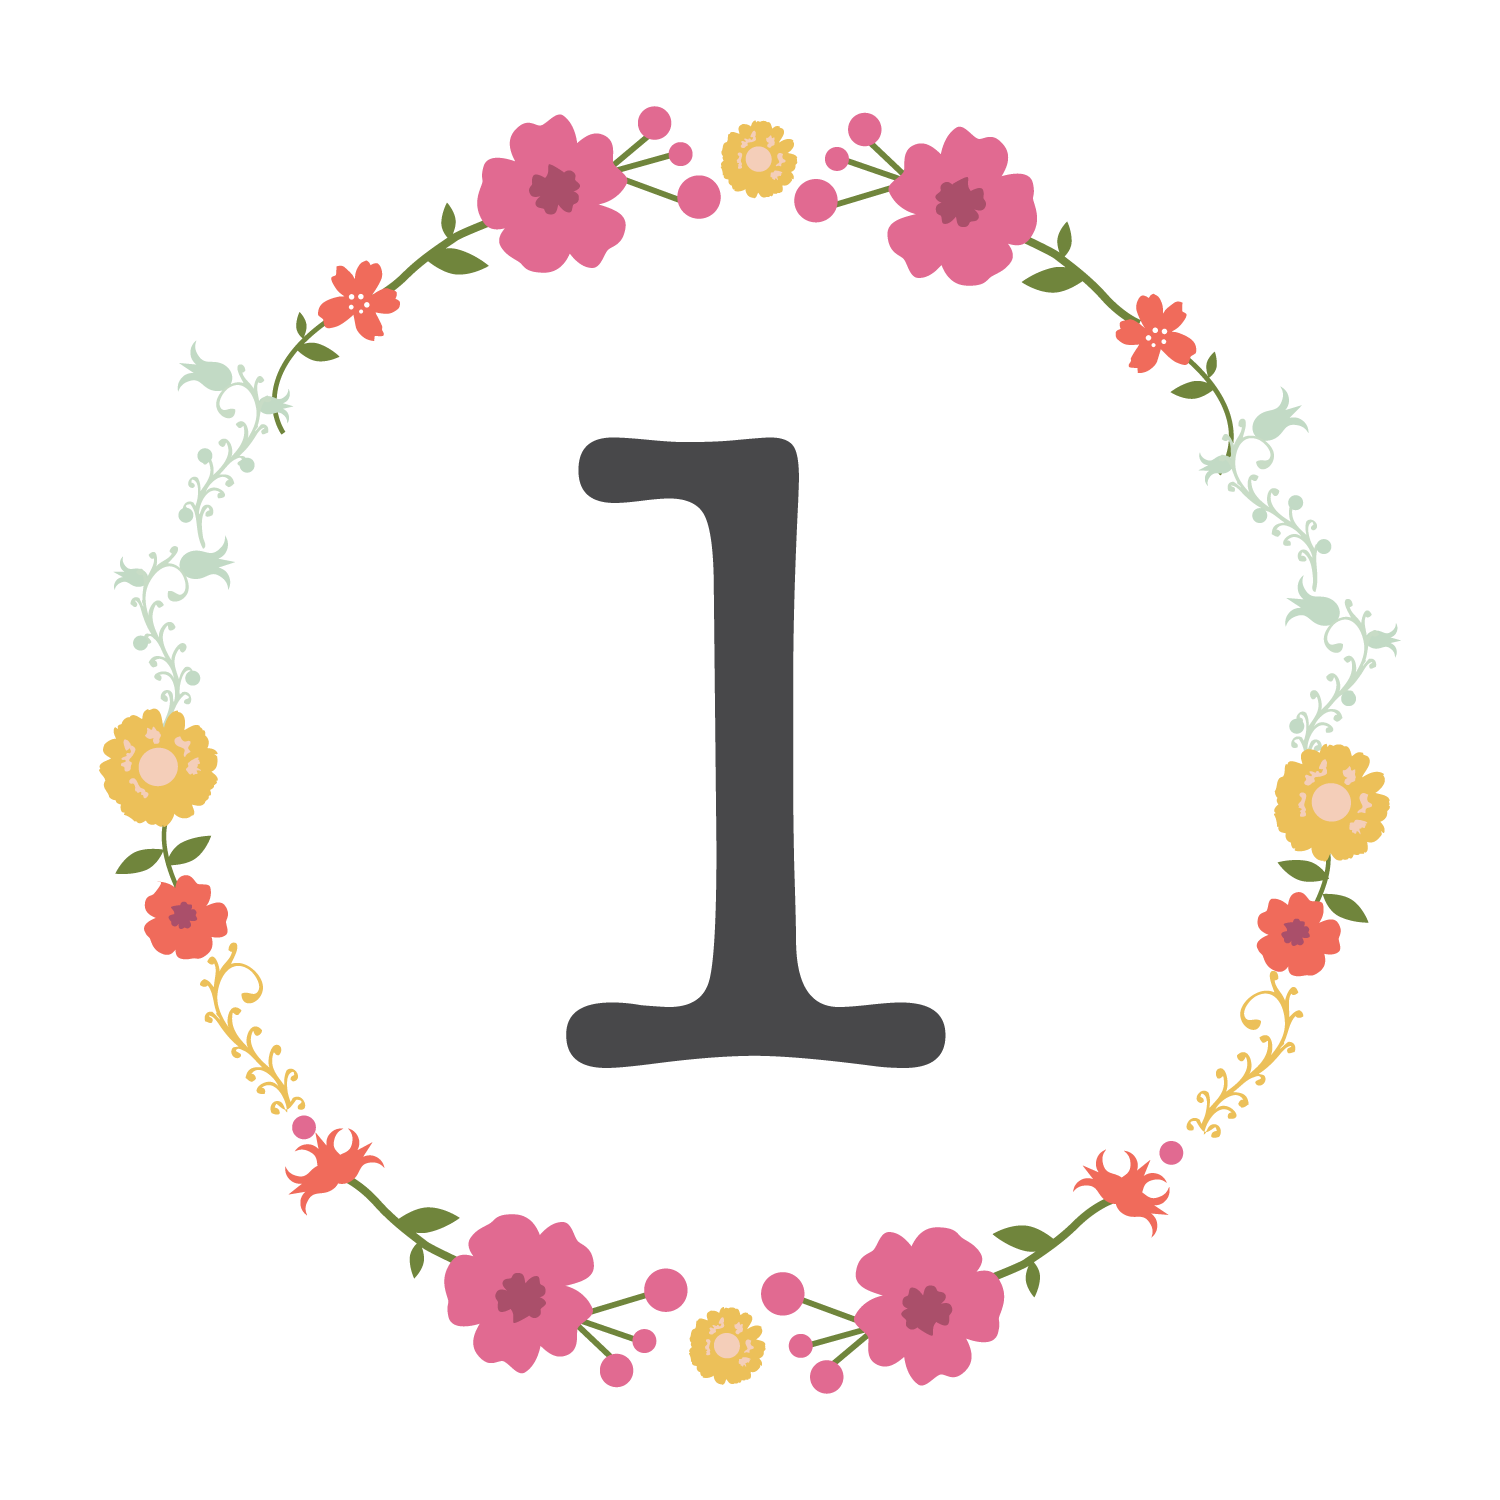 Floral designs of the number zero transluscent clipart clip royalty free library Free Floral Printable Table Number | Freebies & Free Printables ... clip royalty free library